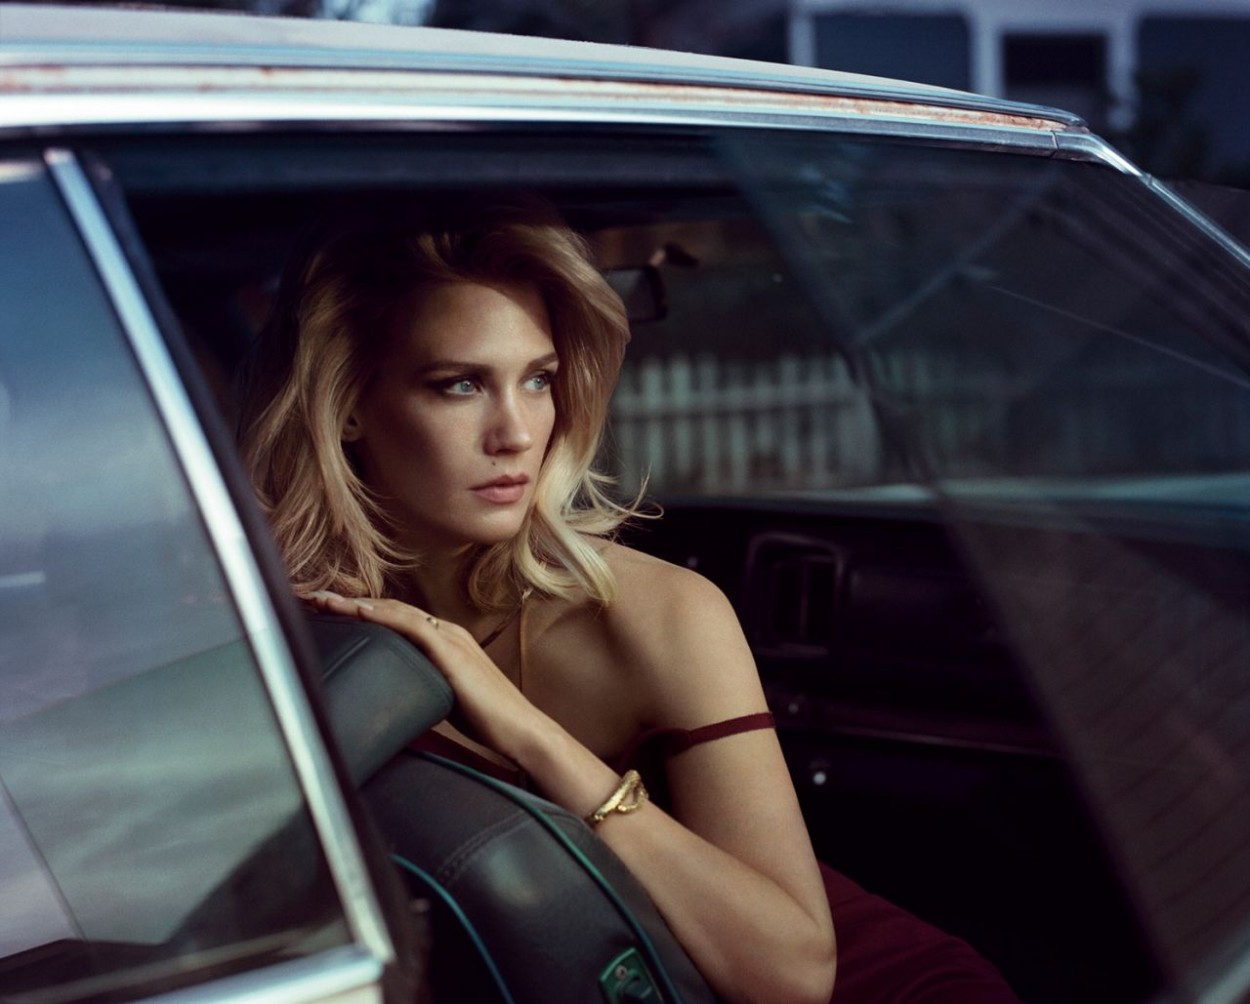 January-Jones-Vogue-Aug-2014-11.jpg